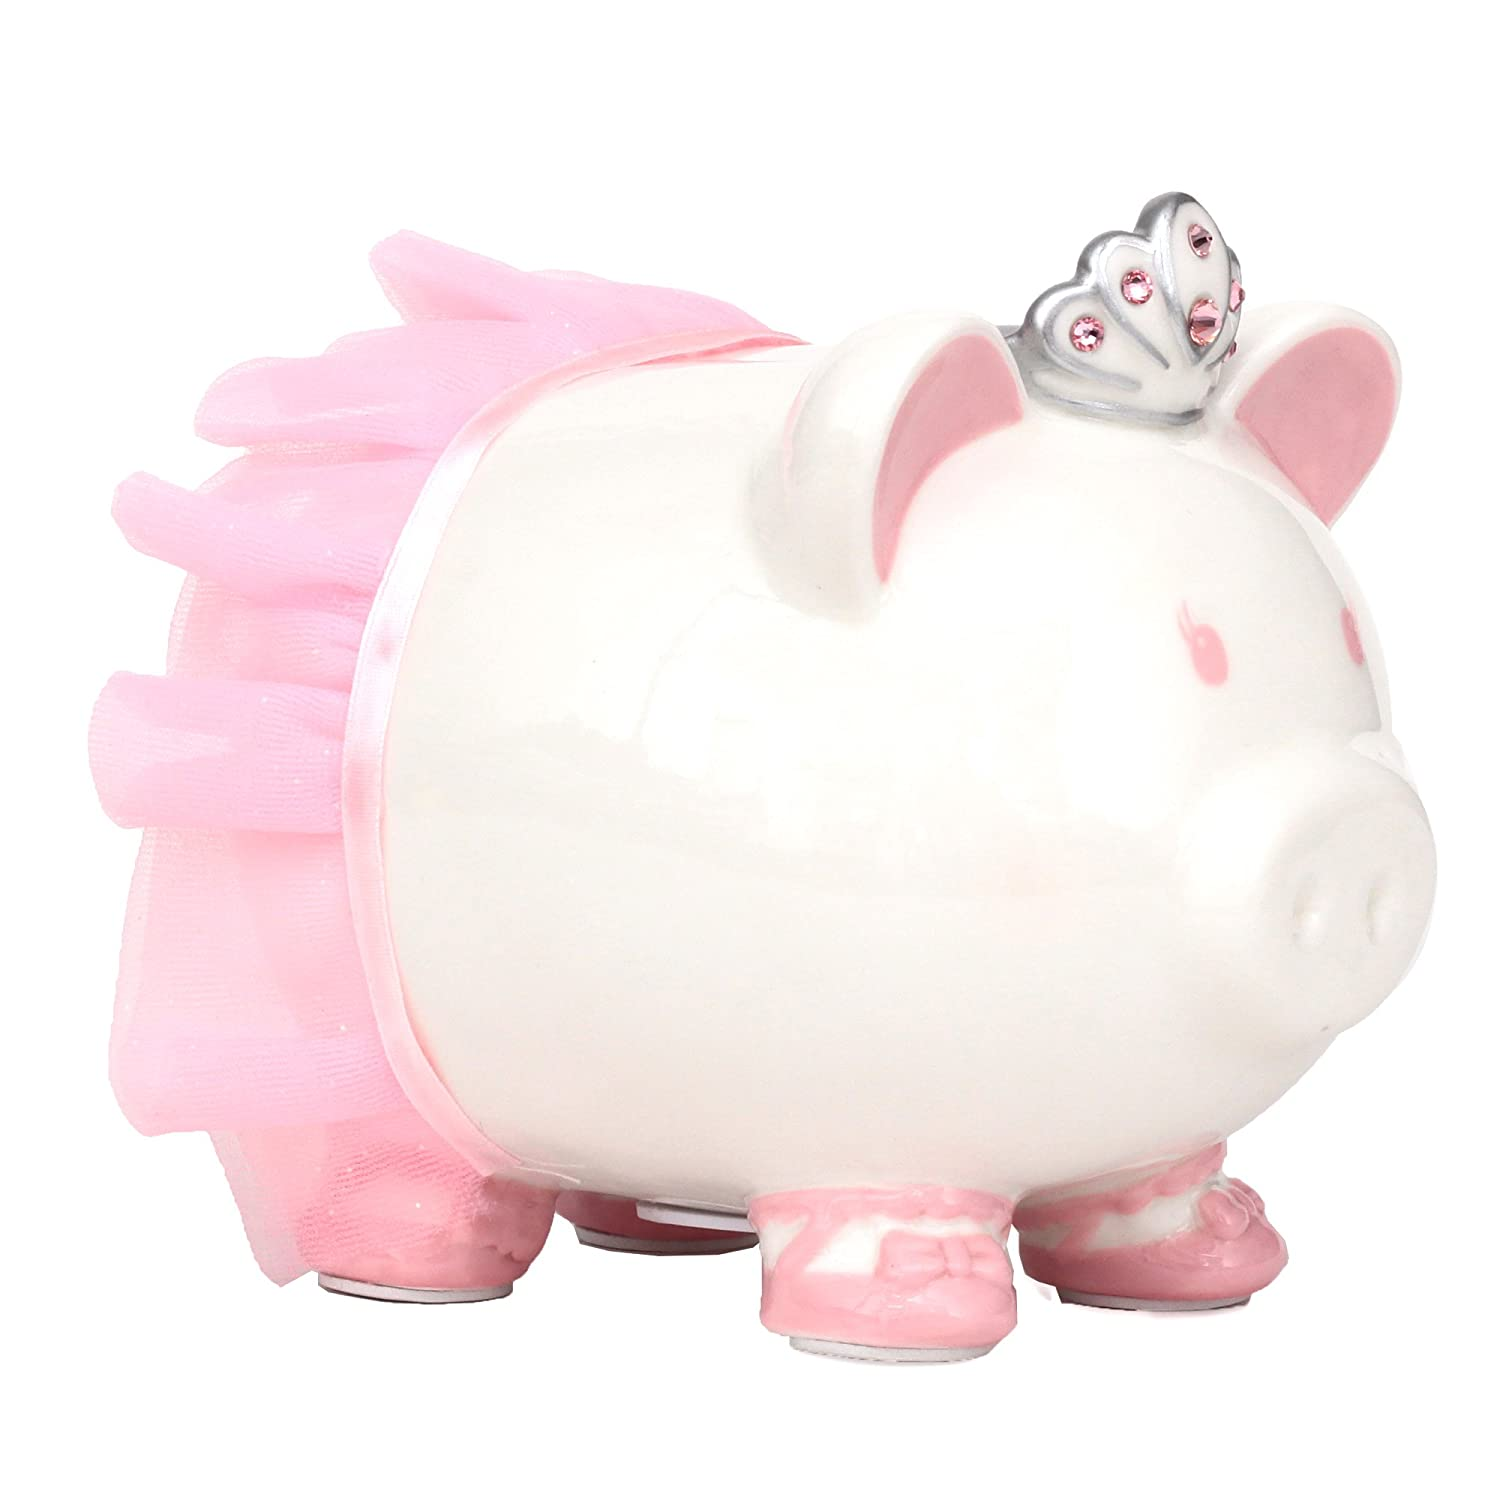 Mud pie ballerina piggy bank mud pie - Amazon Com Swarovski With Crown Princess Porcelain Piggy Bank For Kids By Fab Starpoint Pink Toys Games